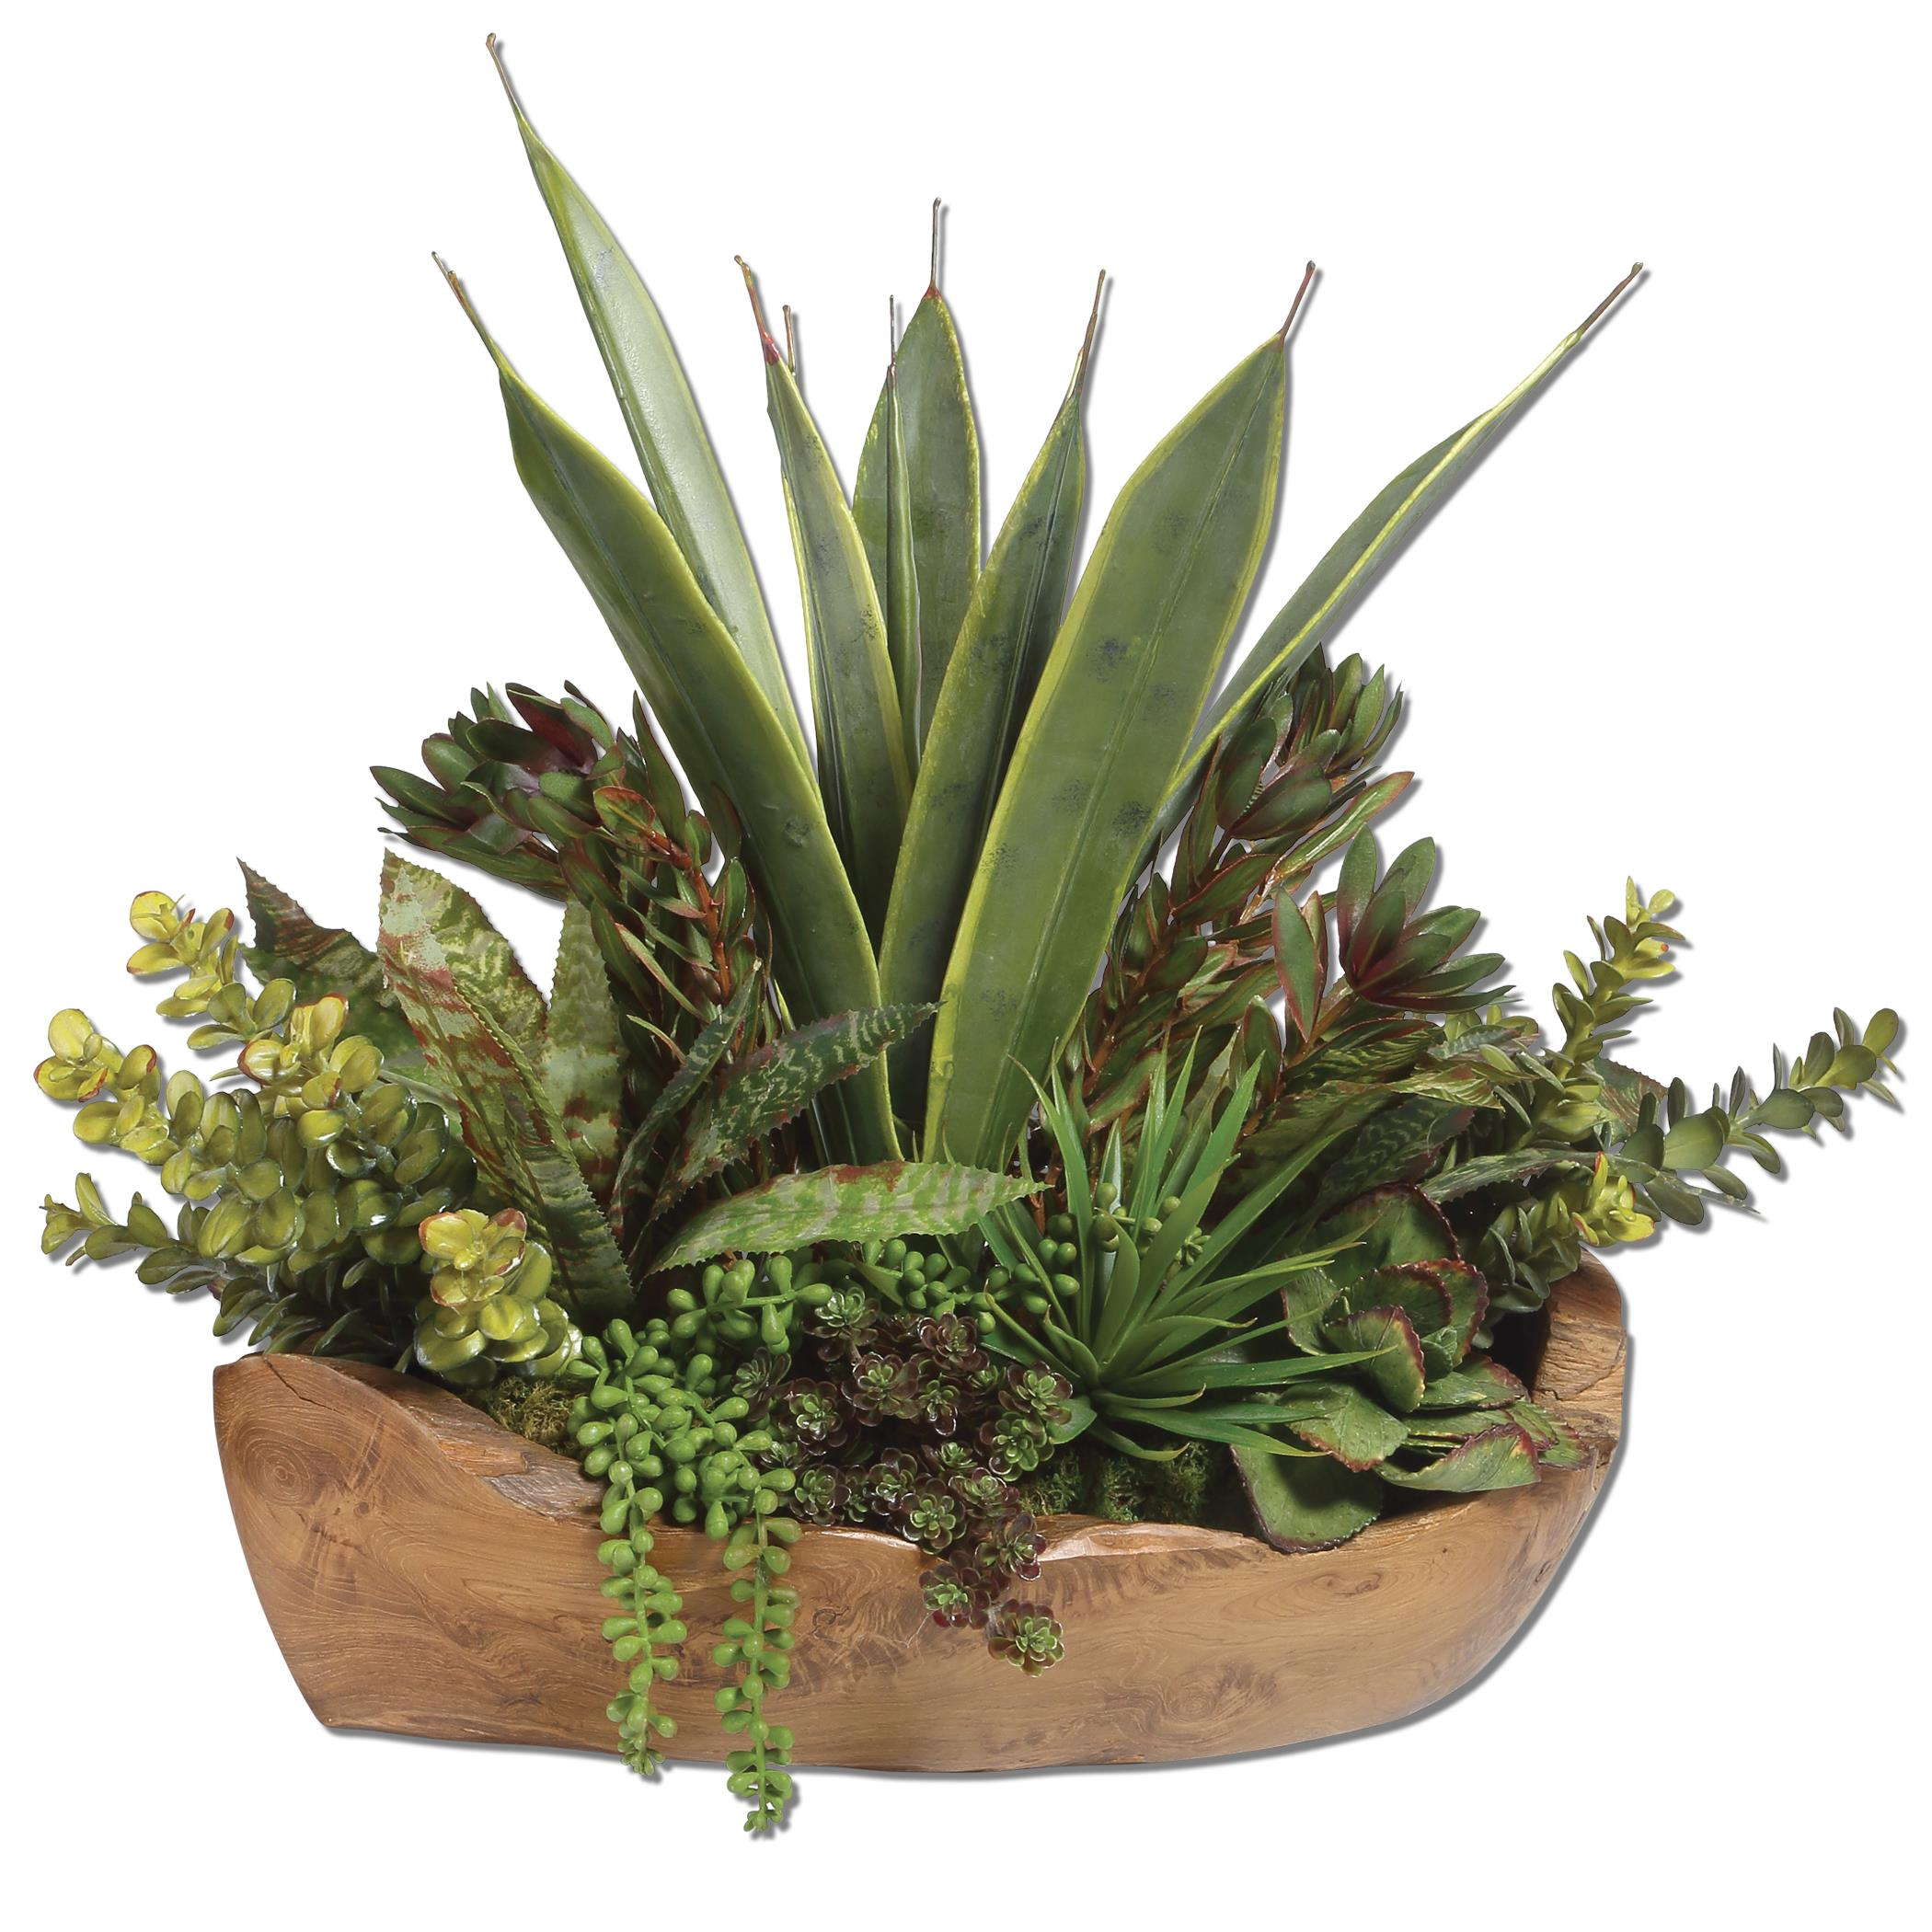 Uttermost Accessories Salar Succulents In Teak Bowl - Item Number: 60119